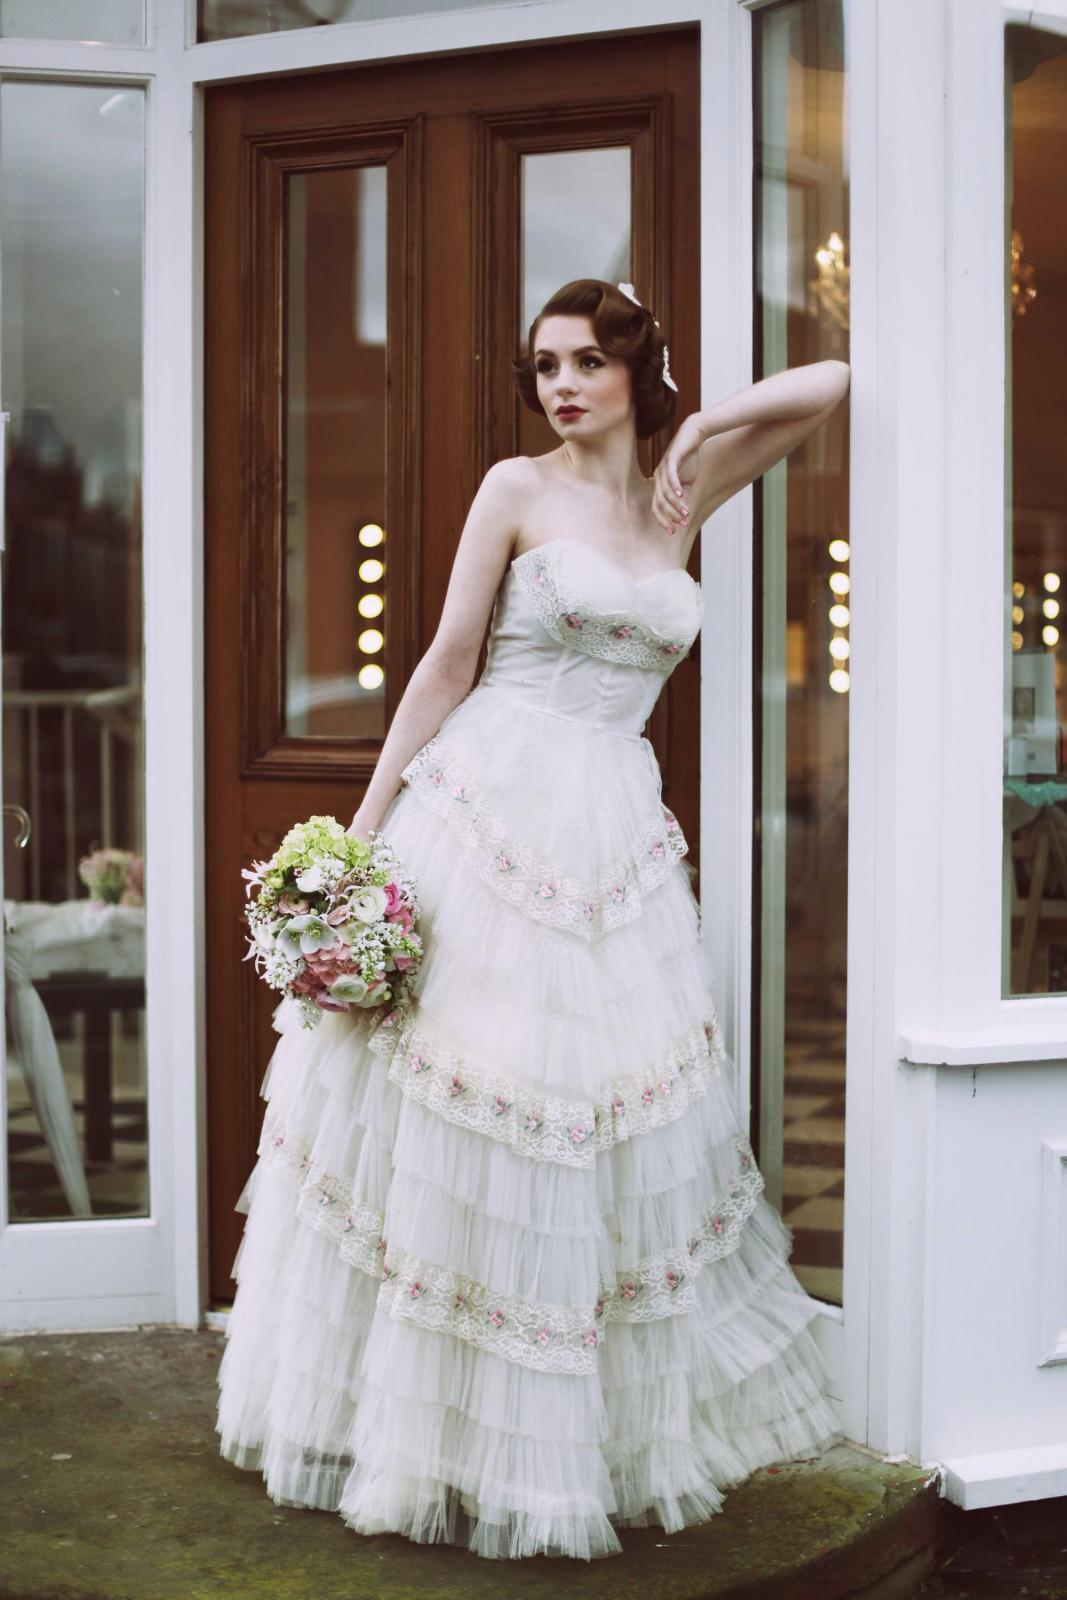 Get the 1950\'s wedding look | Lady.co.uk